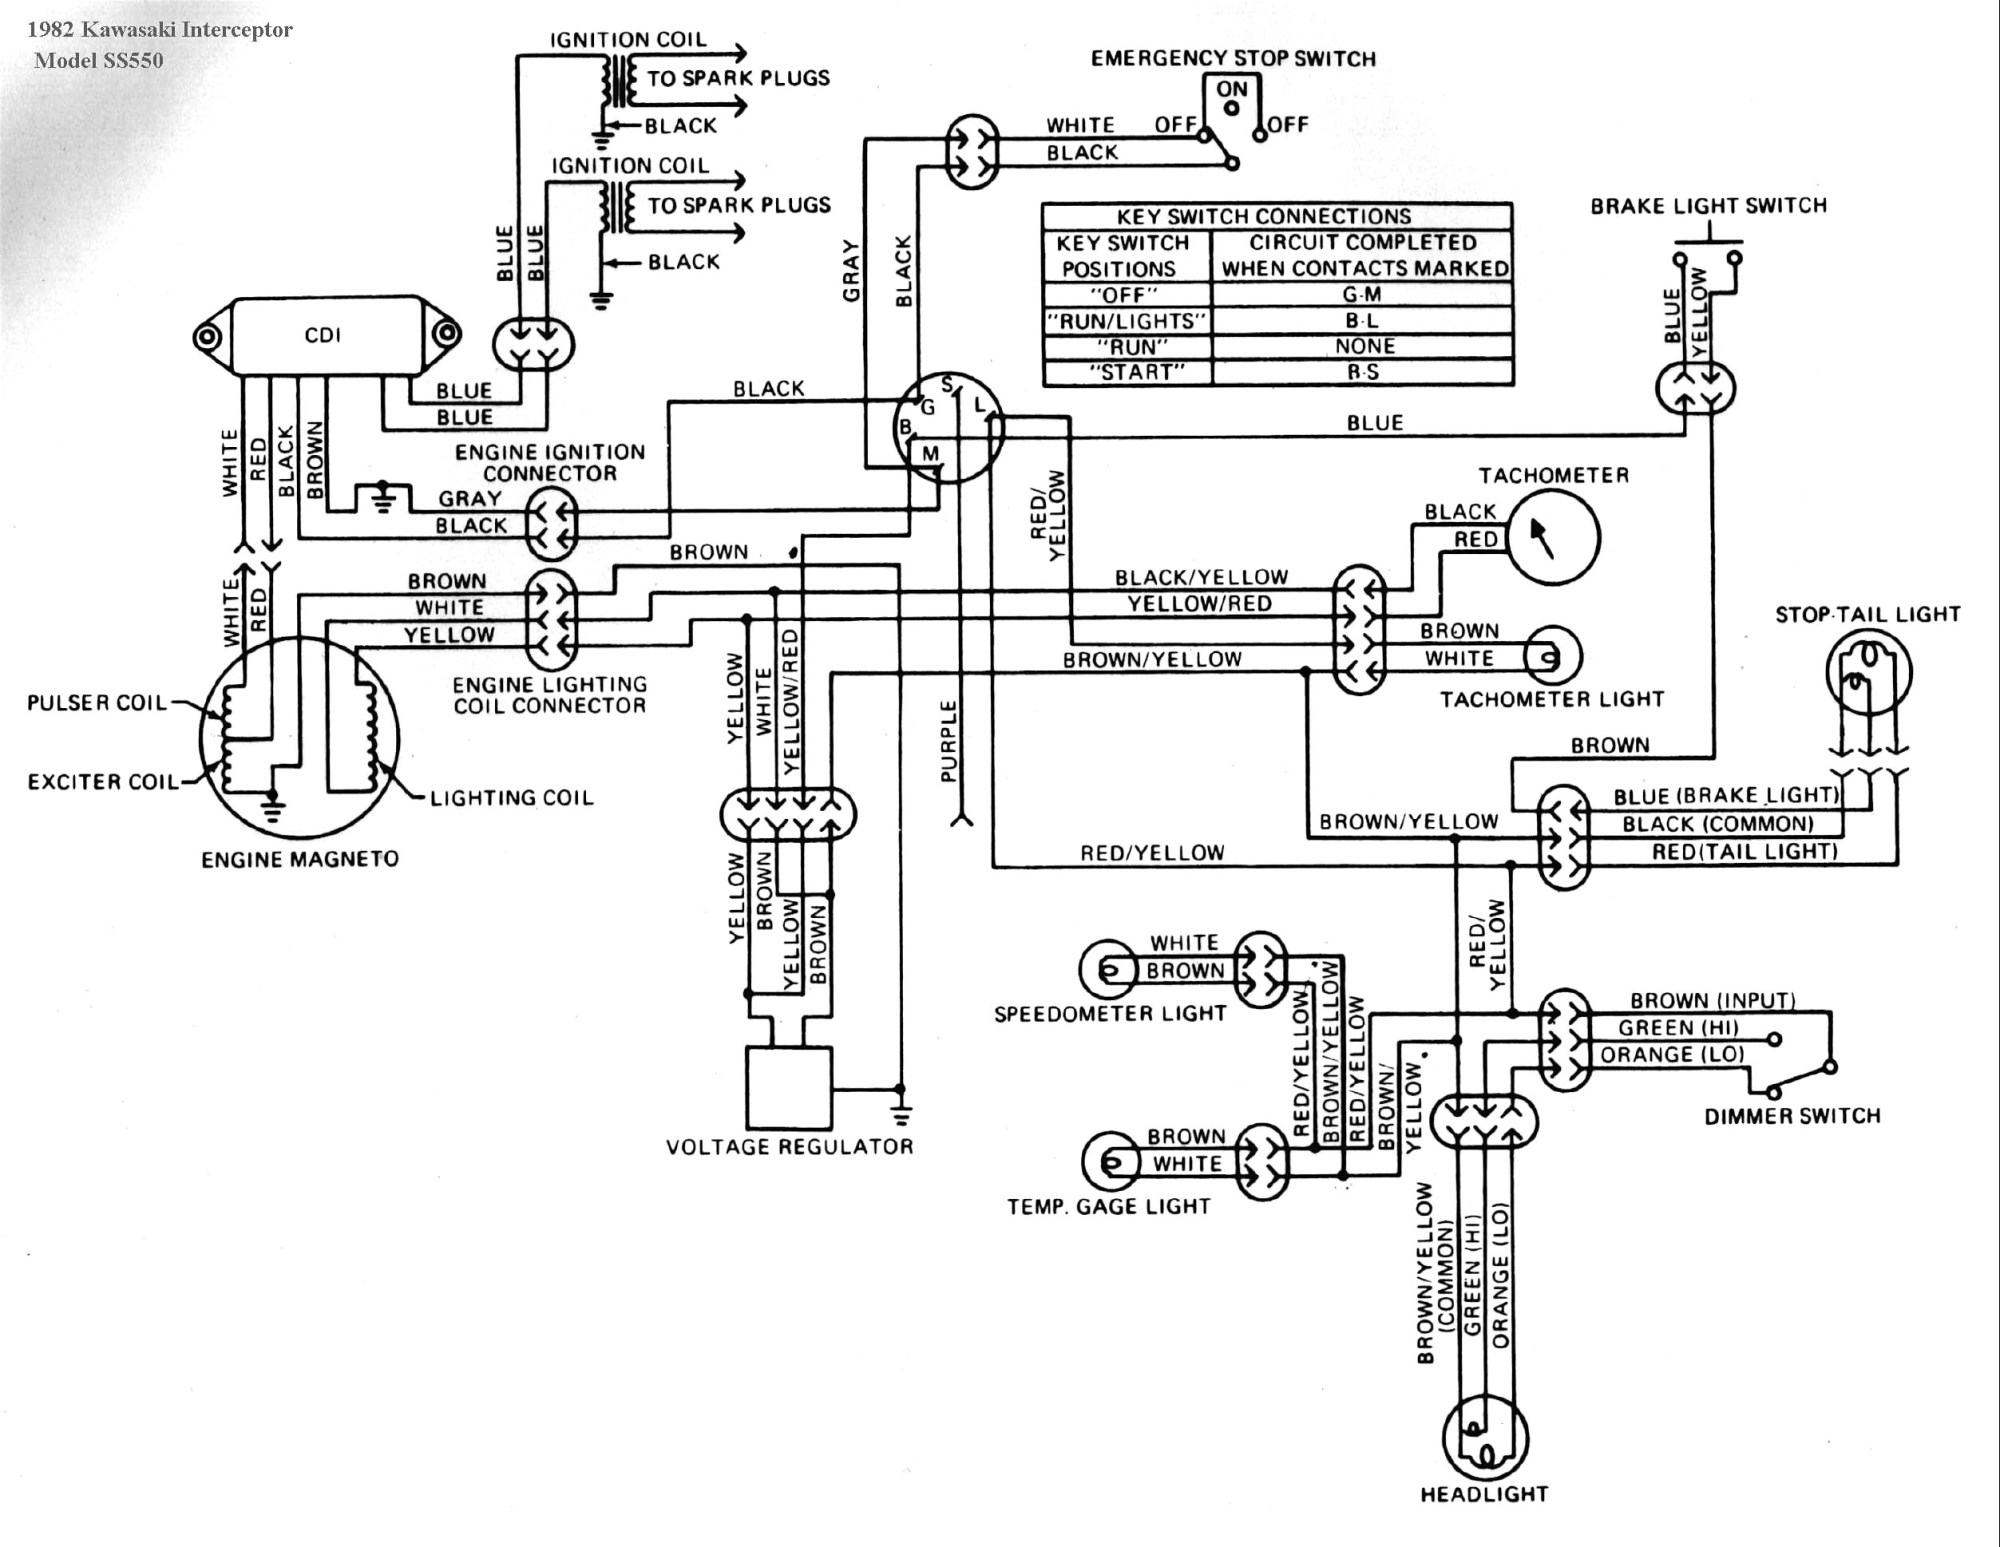 hight resolution of z1 wiring diagram wiring diagram 1973 kawasaki wiring diagram wiring diagram database mix kawasaki klr 650